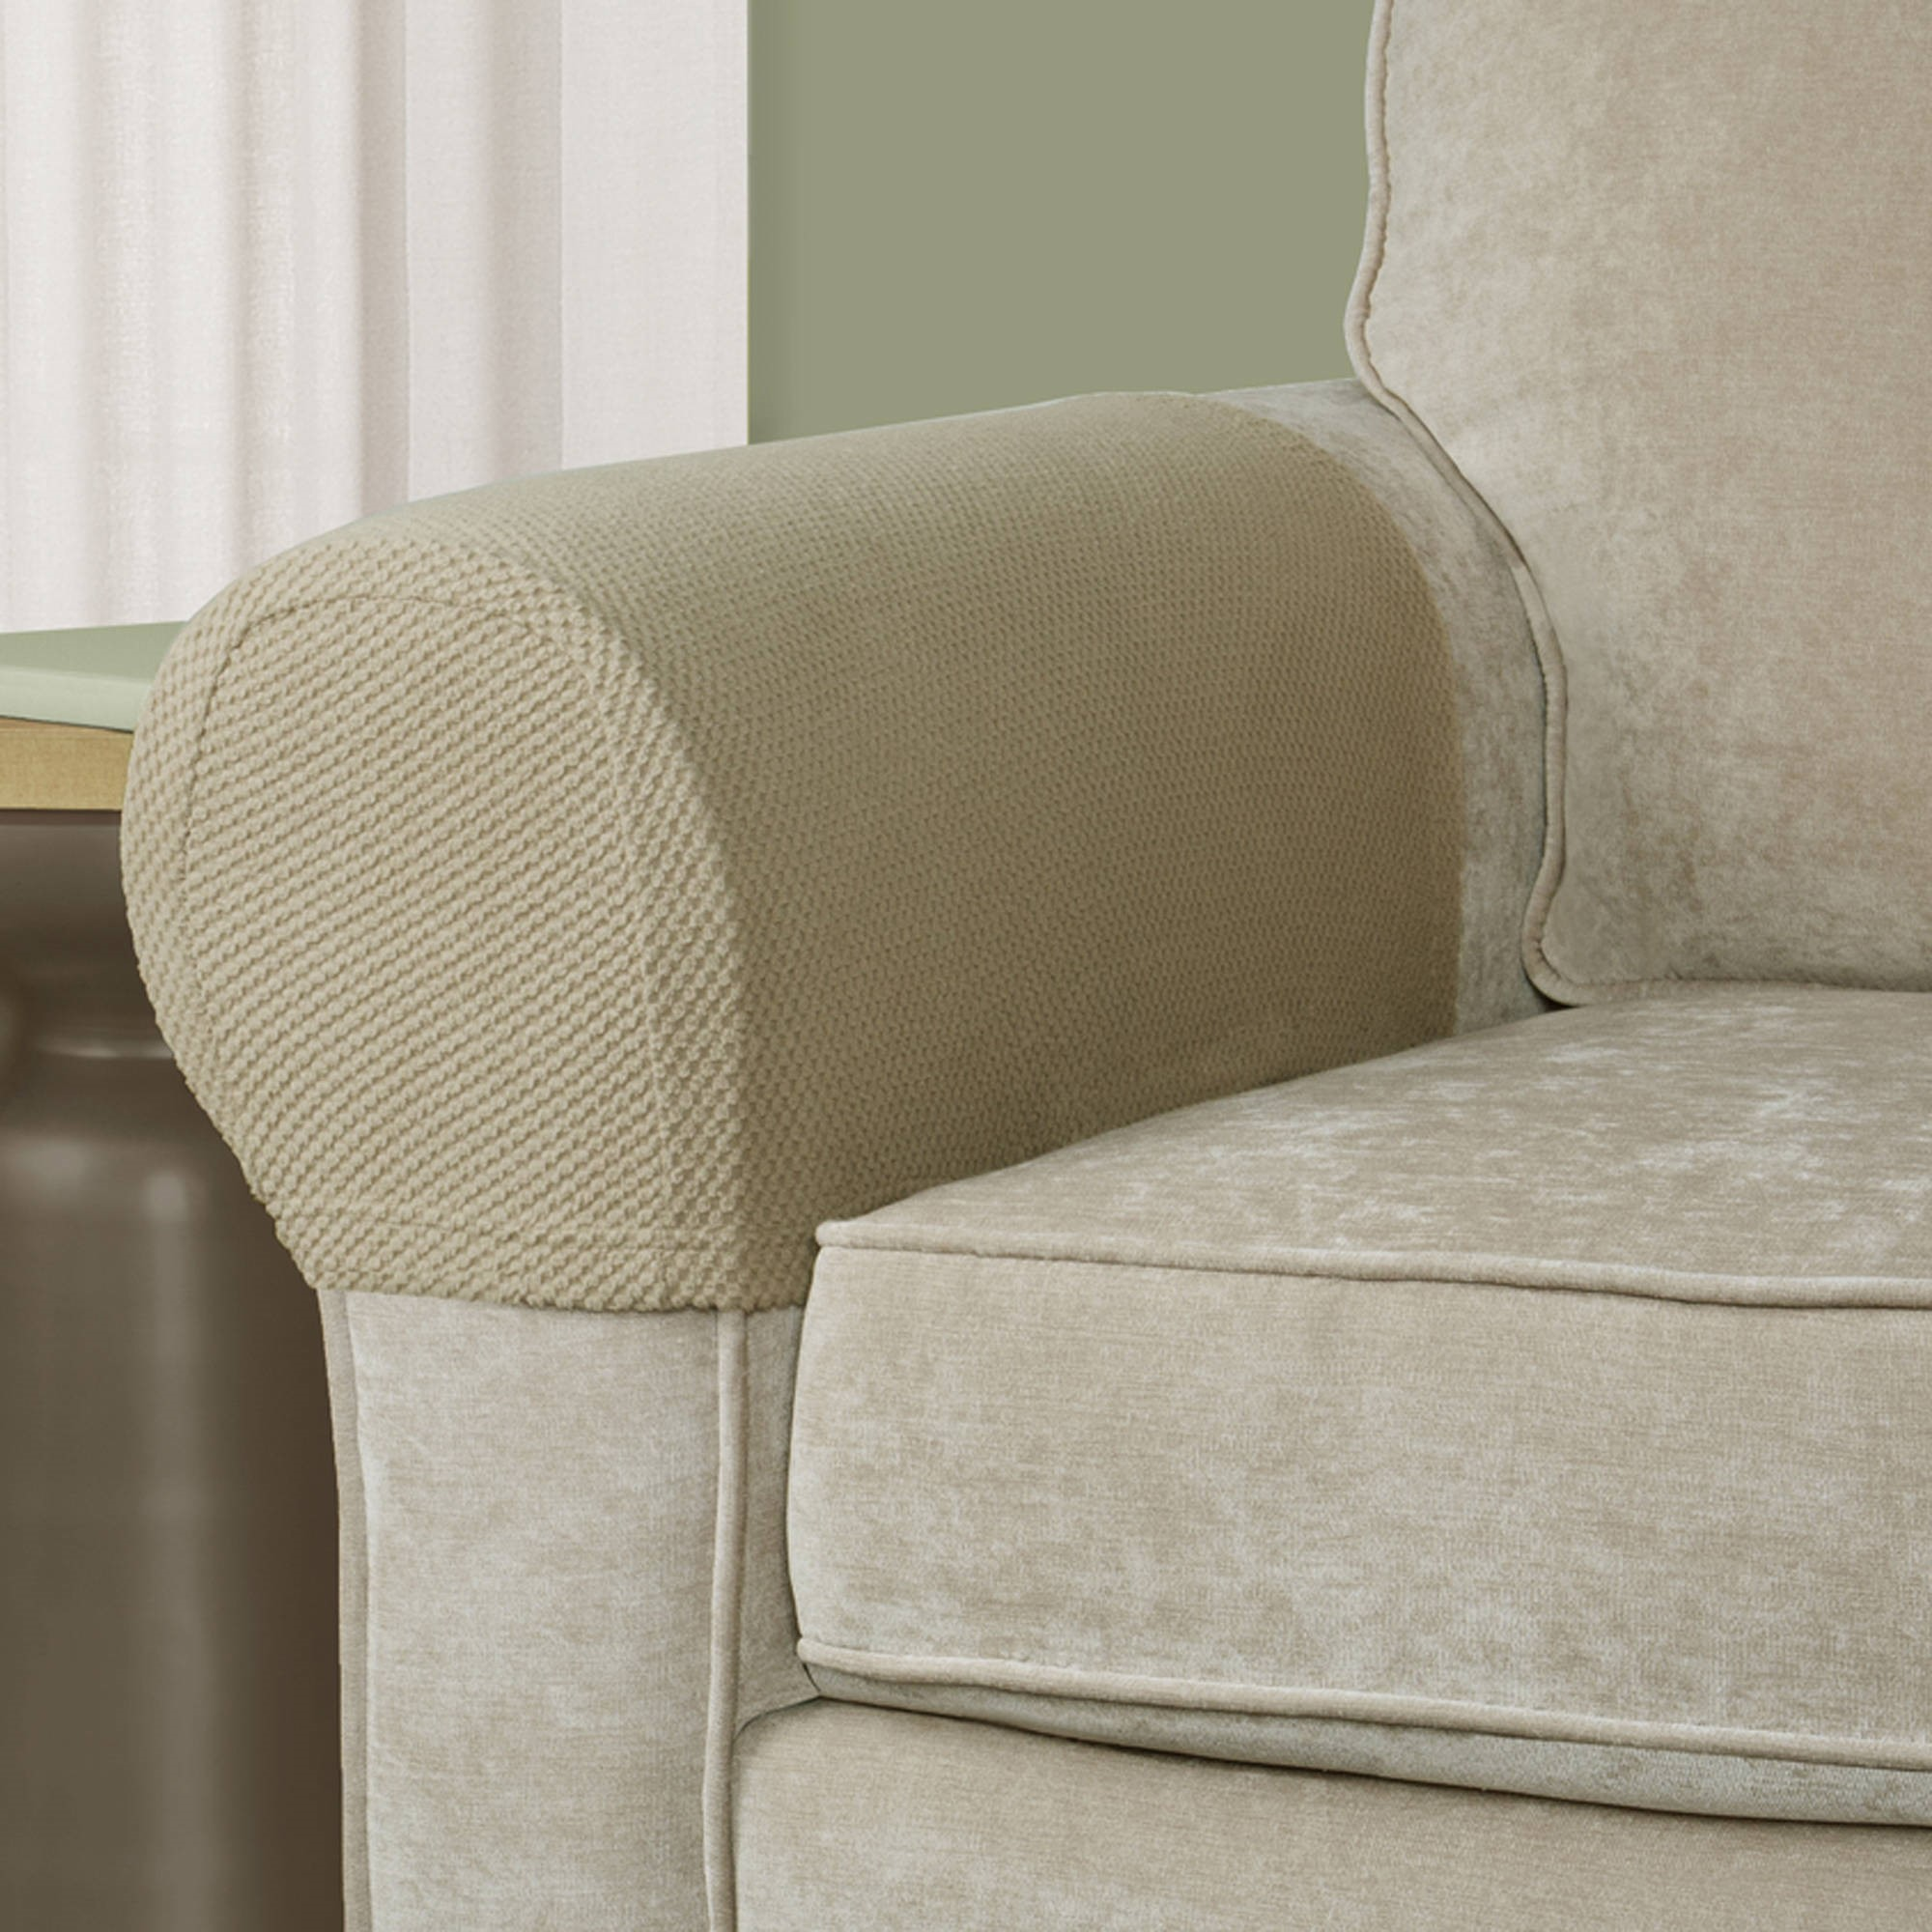 Maytex Pixel Stretch Furniture Cover/Slipcover Arm Covers, 2  Piece